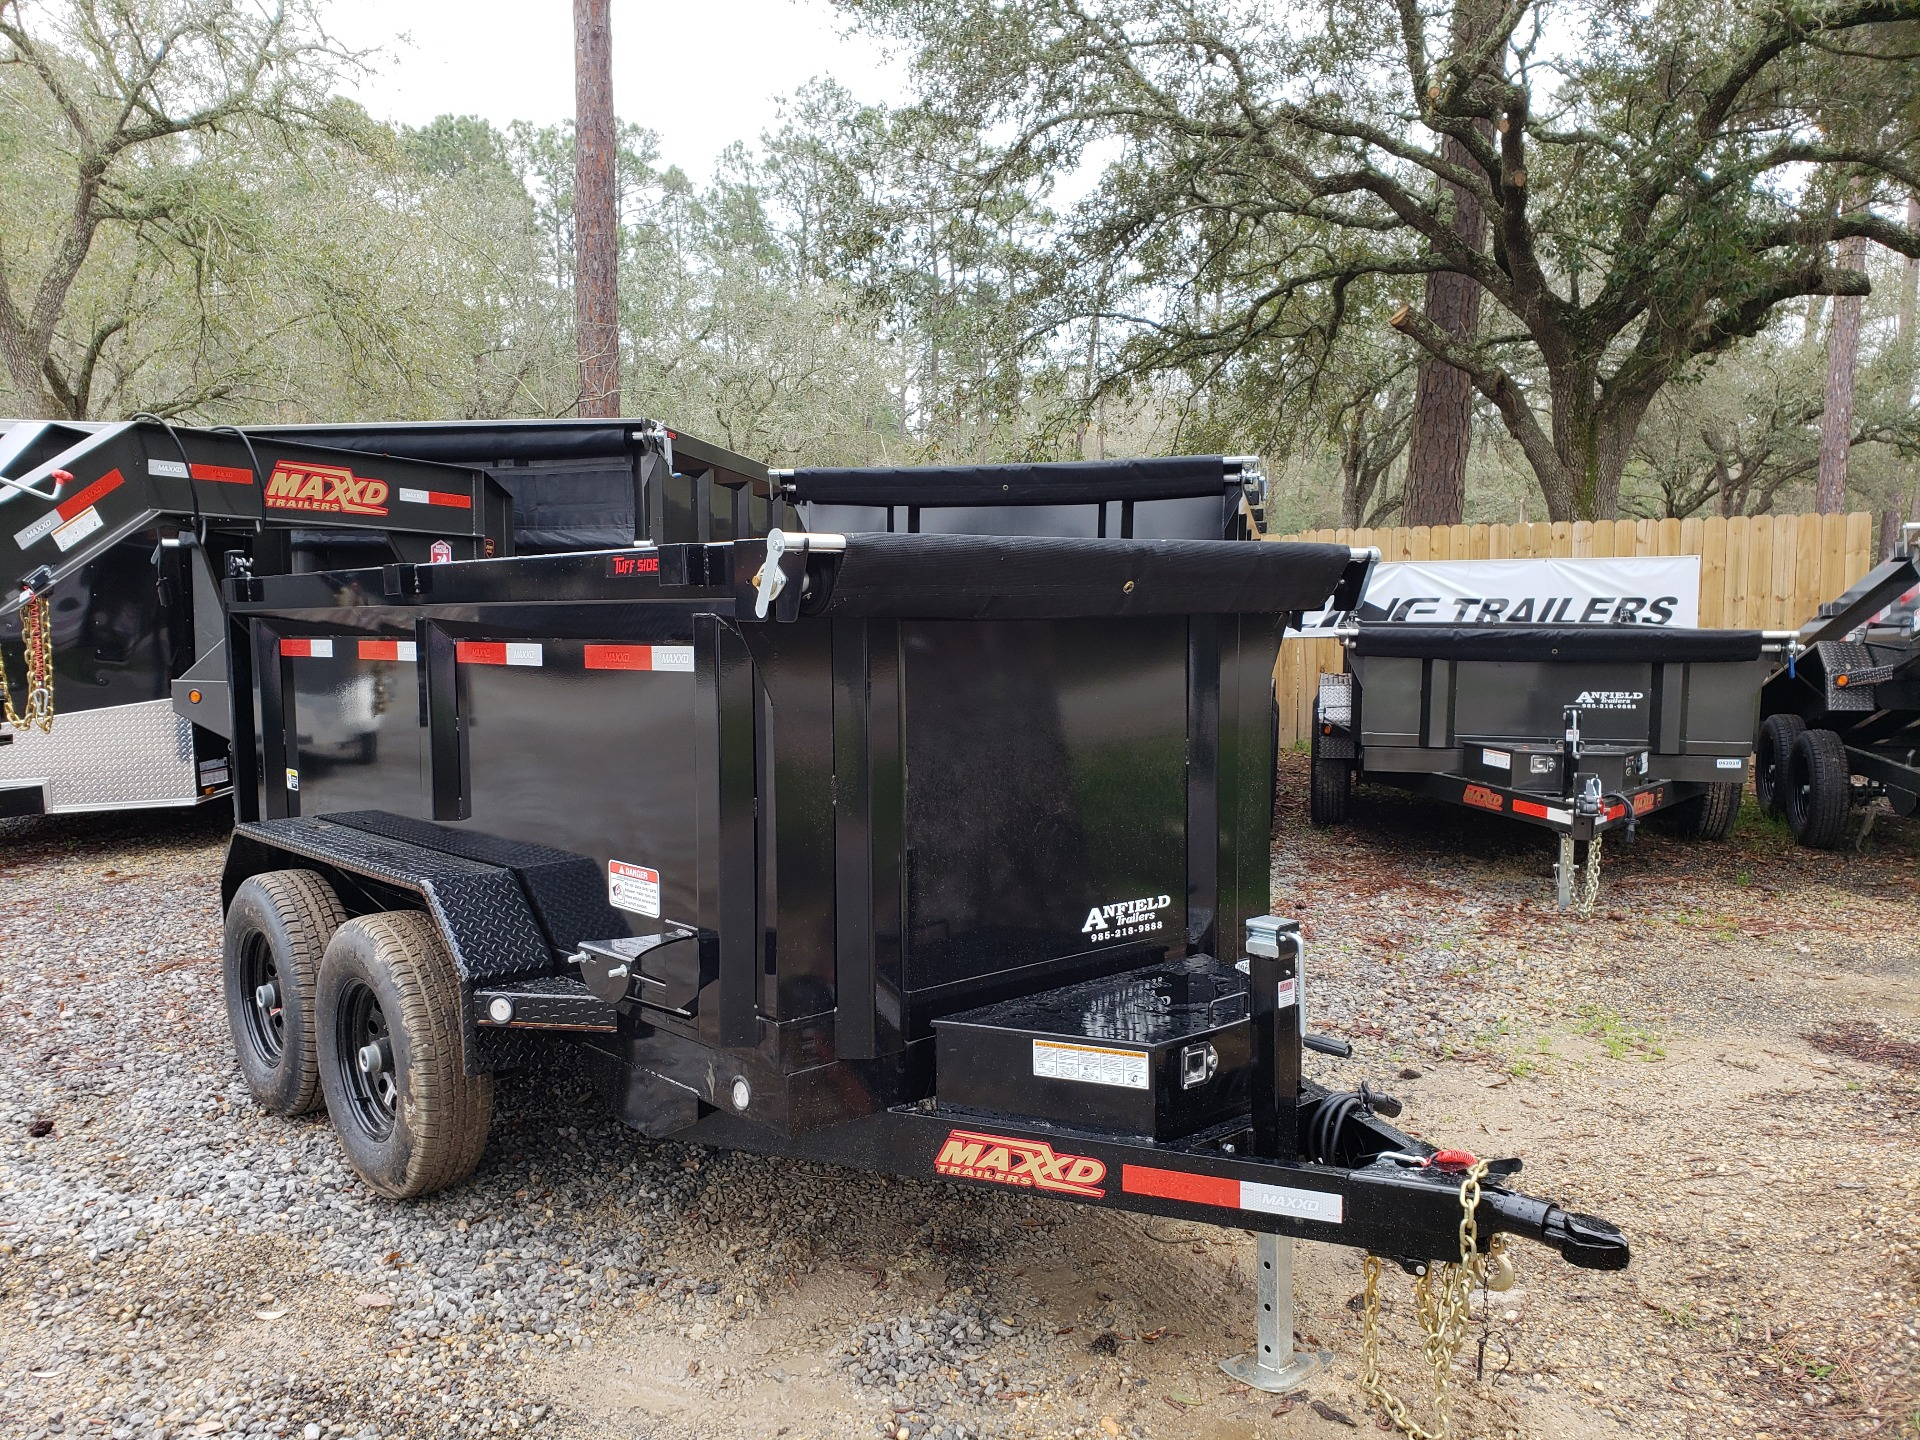 2019 MaxxD Trailers 10 x 60 Dump 3' Sides in Pearl River, Louisiana - Photo 1